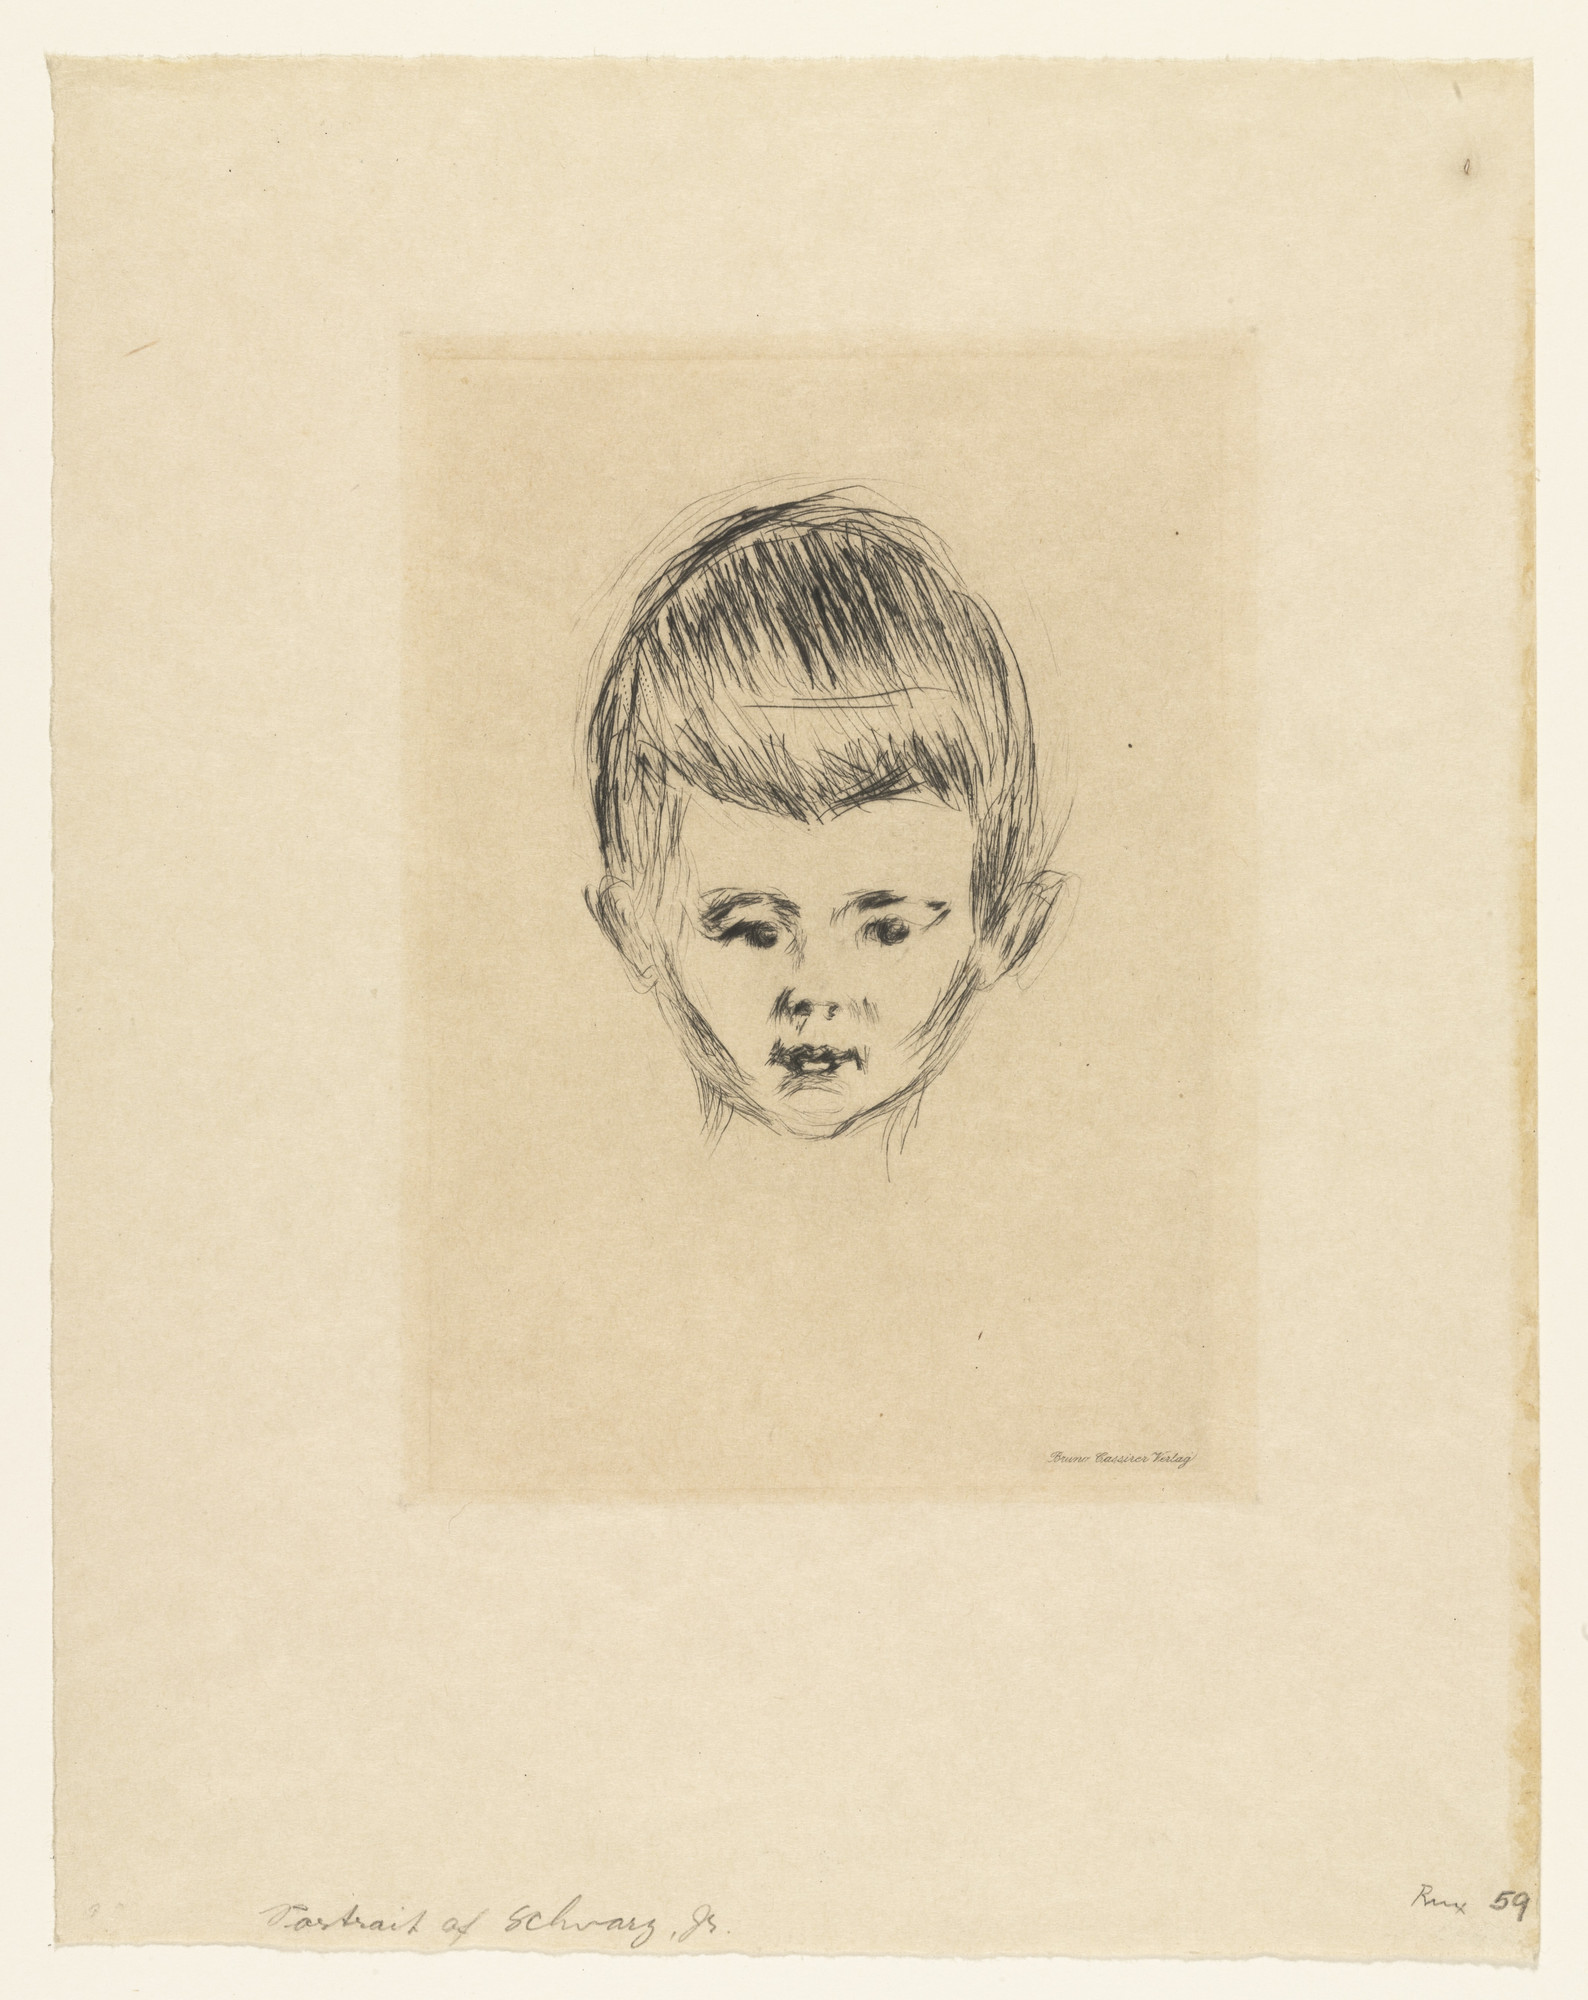 Edvard Munch. Portrait of Andreas Schwarz. 1906, published 1922